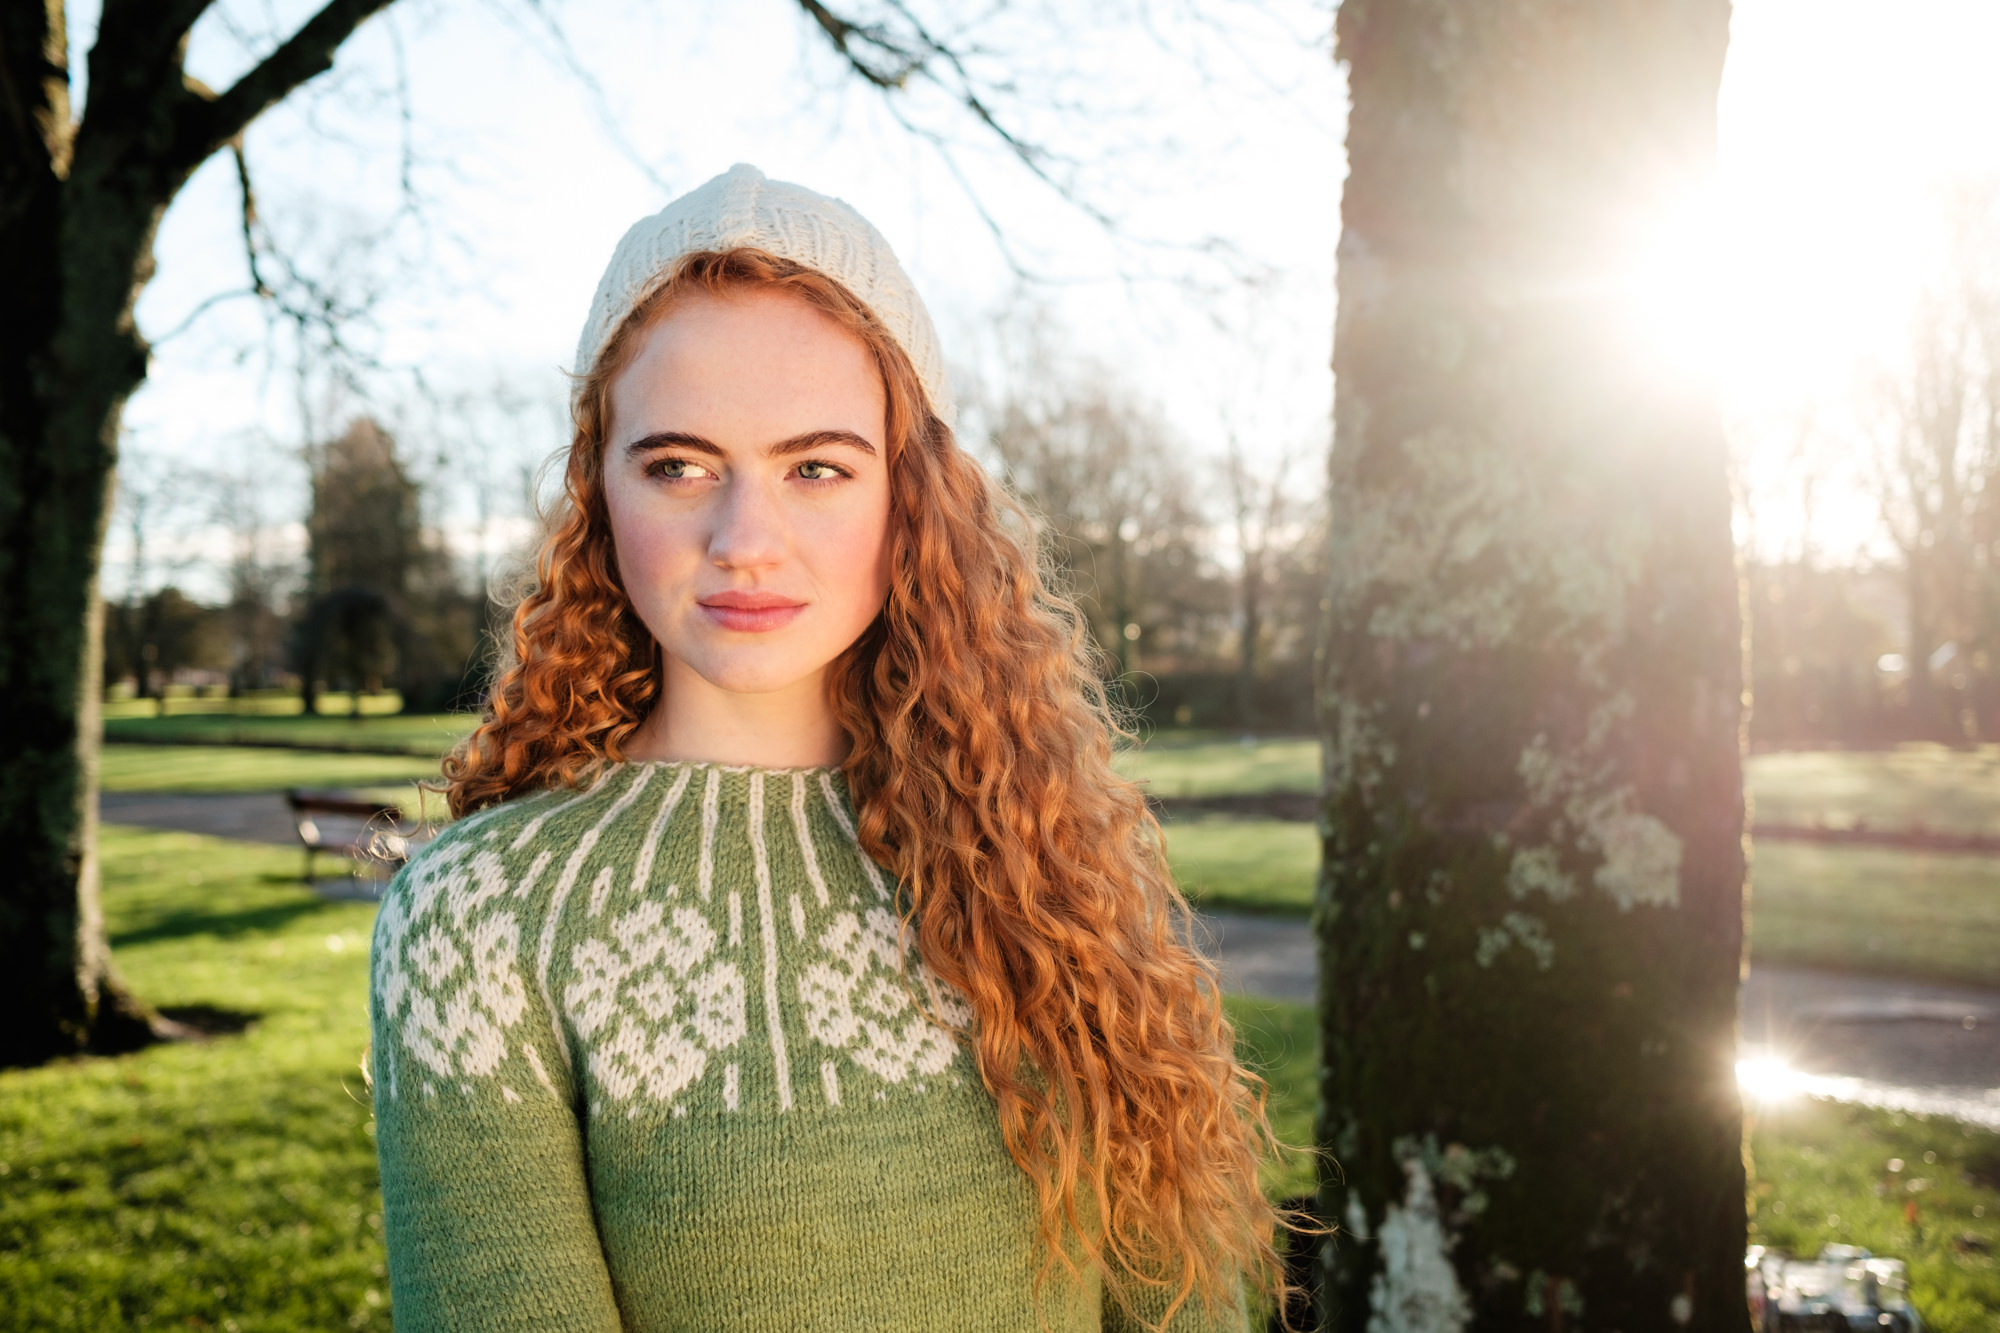 Red haired model wearing 100% Irish knitwear patterned green pullover jumper and cream wooly hat by Rory O'Toole